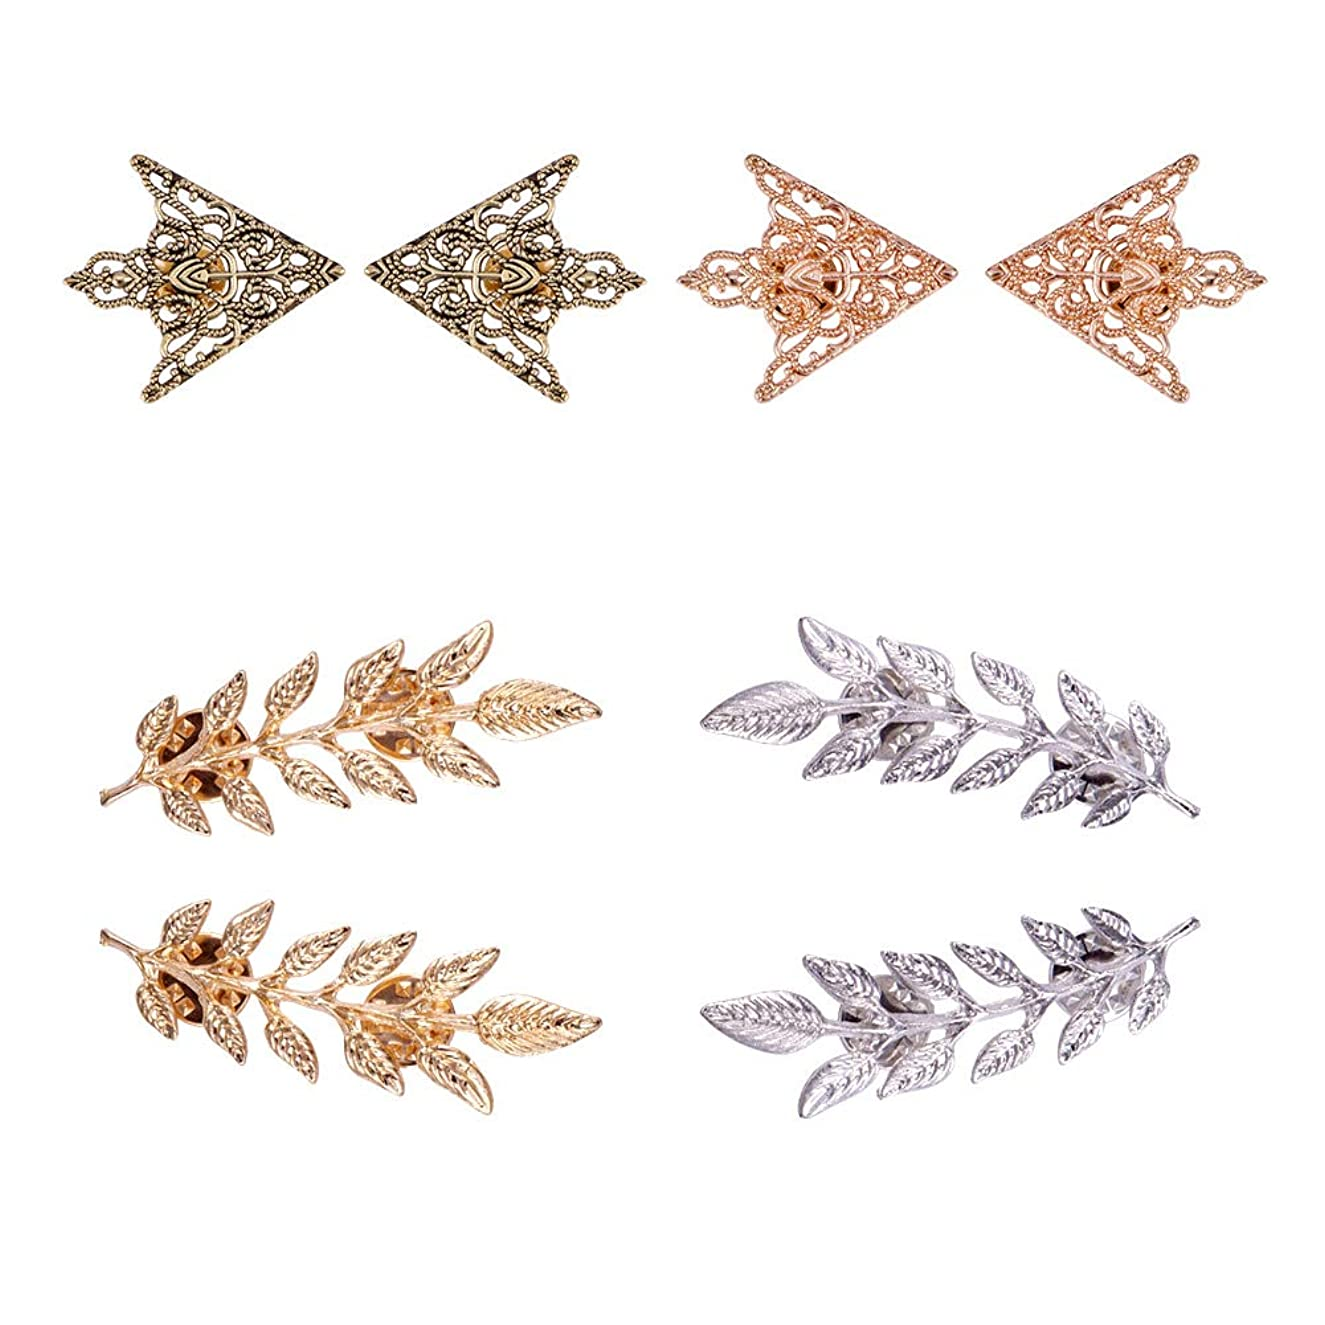 PH PandaHall 8pcs(4 Pairs) 4 Colors Triangle/Leaf Shape Alloy Brooches Hollow Pattern Shirt Collar Brooch Unisex, Antique Bronze/Golden/Silver/Rose Gold